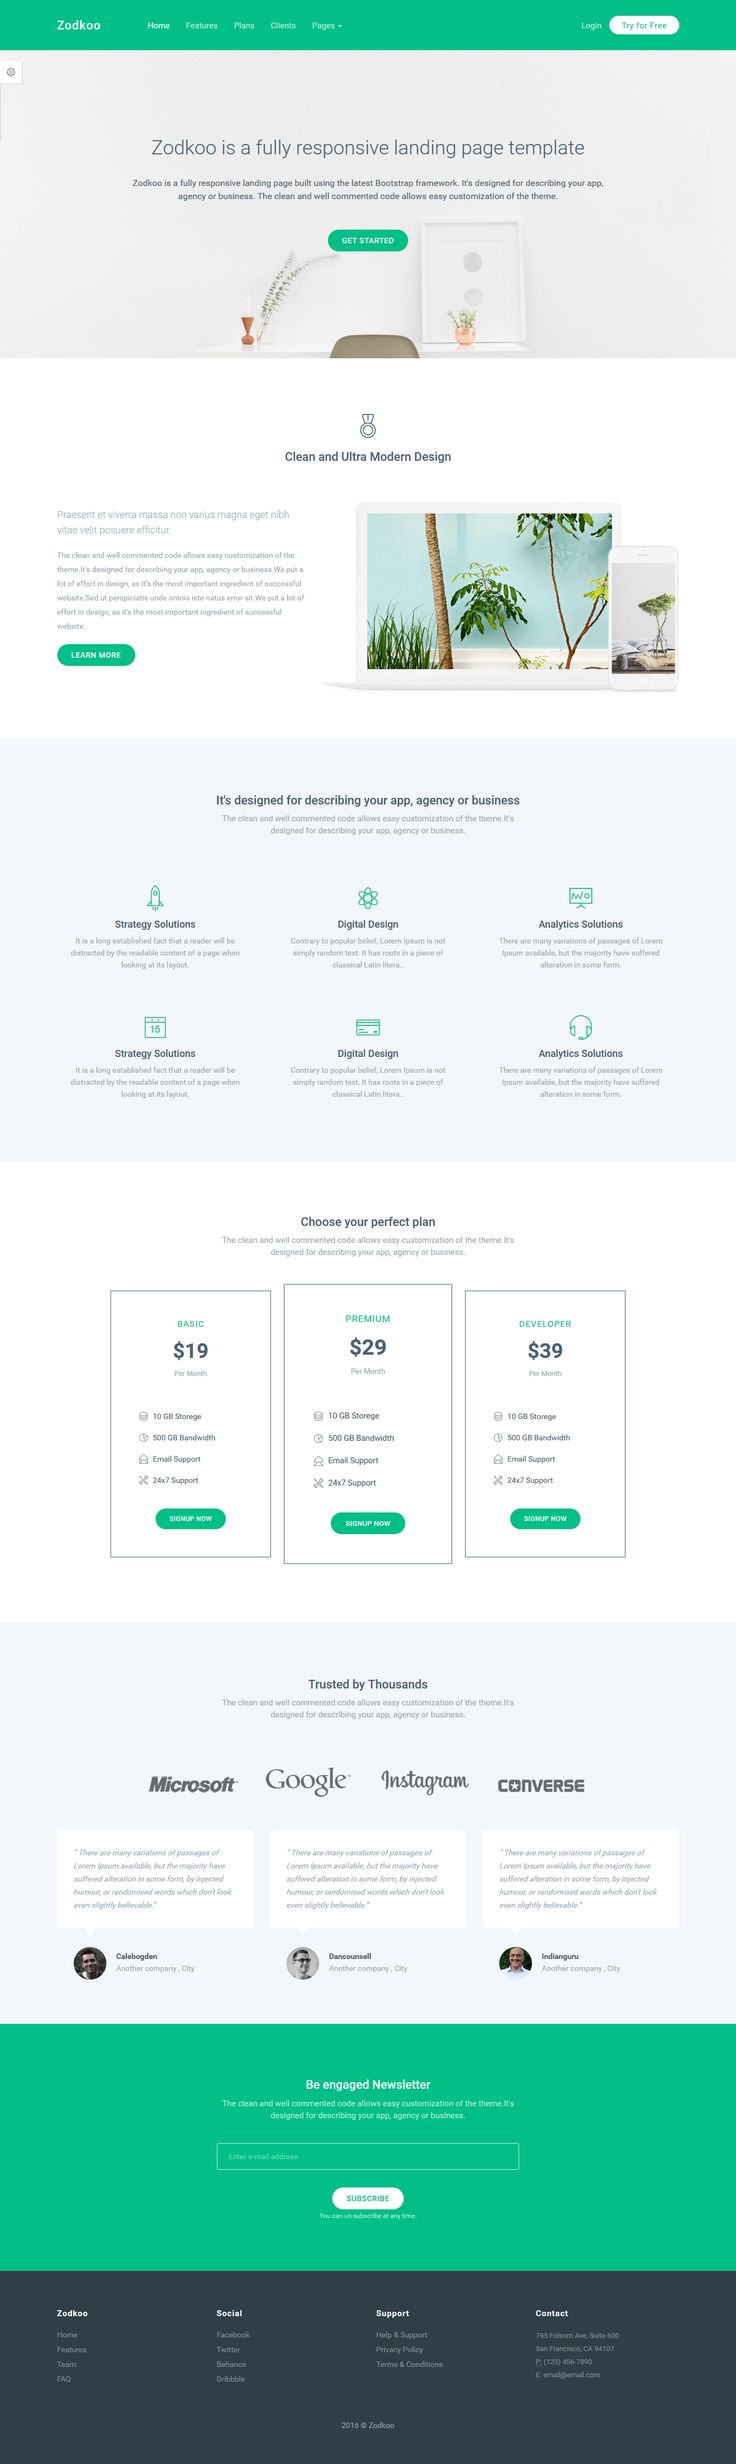 Zodkoo - Responsive Landing Page Template. Live Preview & Download: https://themeforest.net/item/zodkoo-responsive-landing-page-template/16269454?ref=ksioks